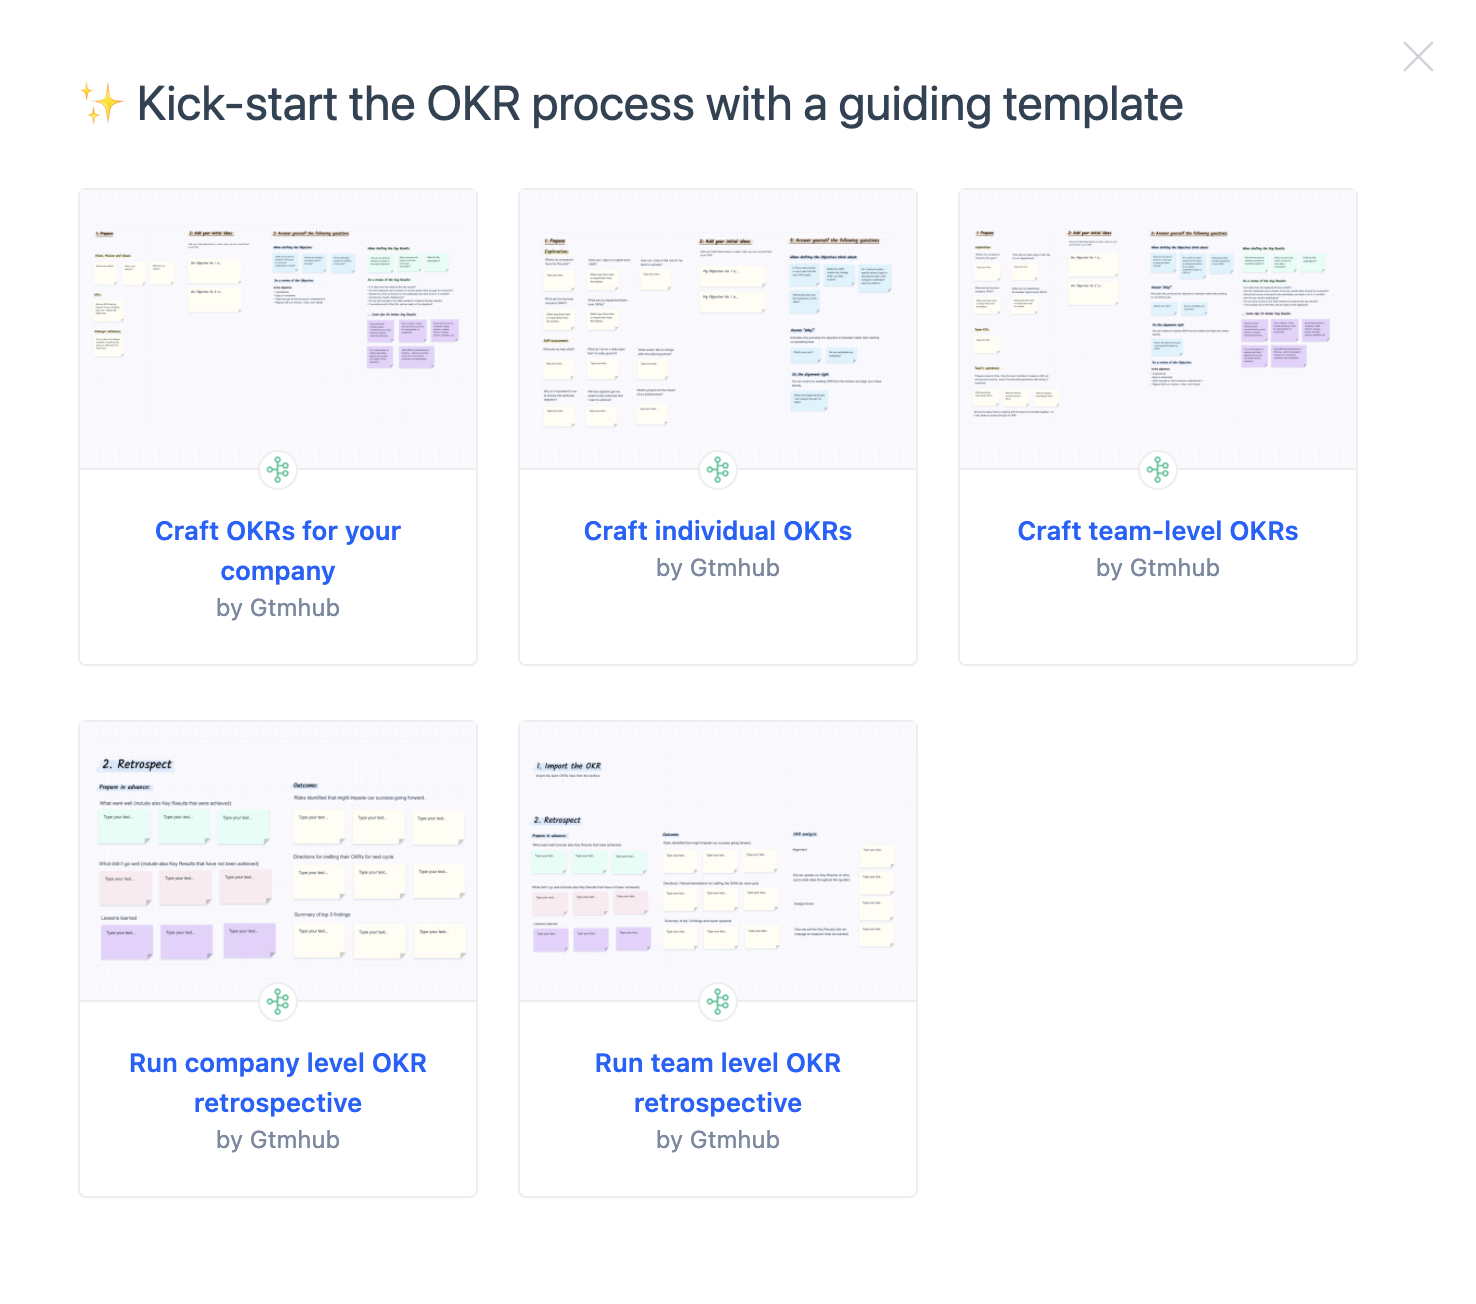 Kick-start the OKR process with Whiteboard templates